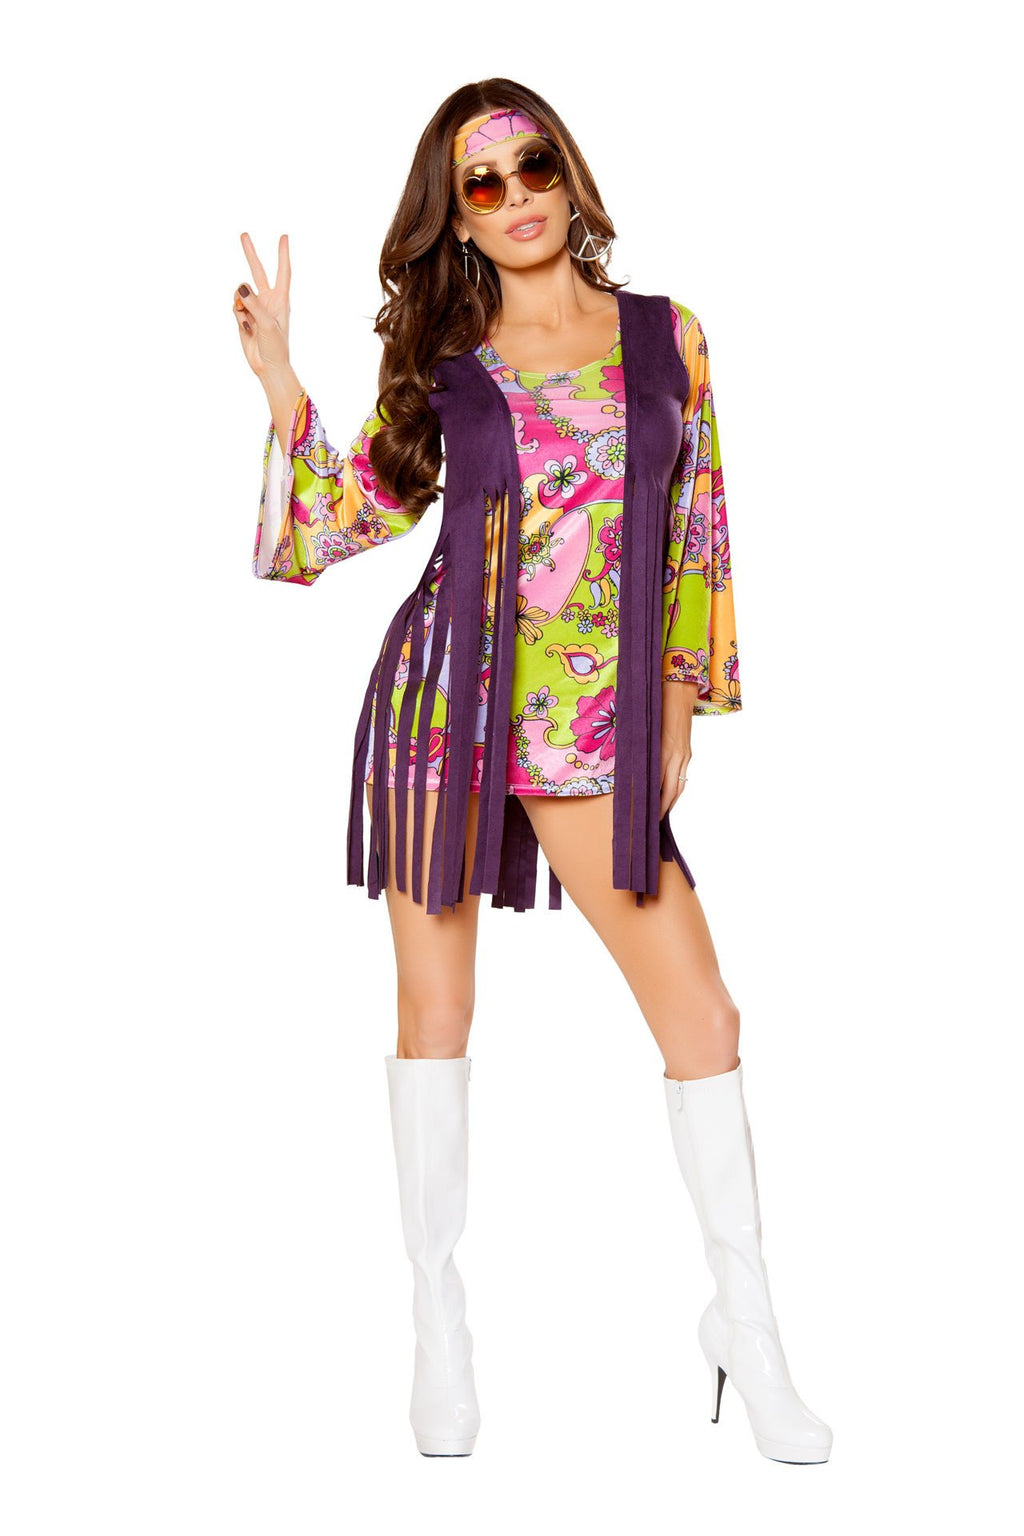 3pc Groovy Hippie - PlaythingsMiami